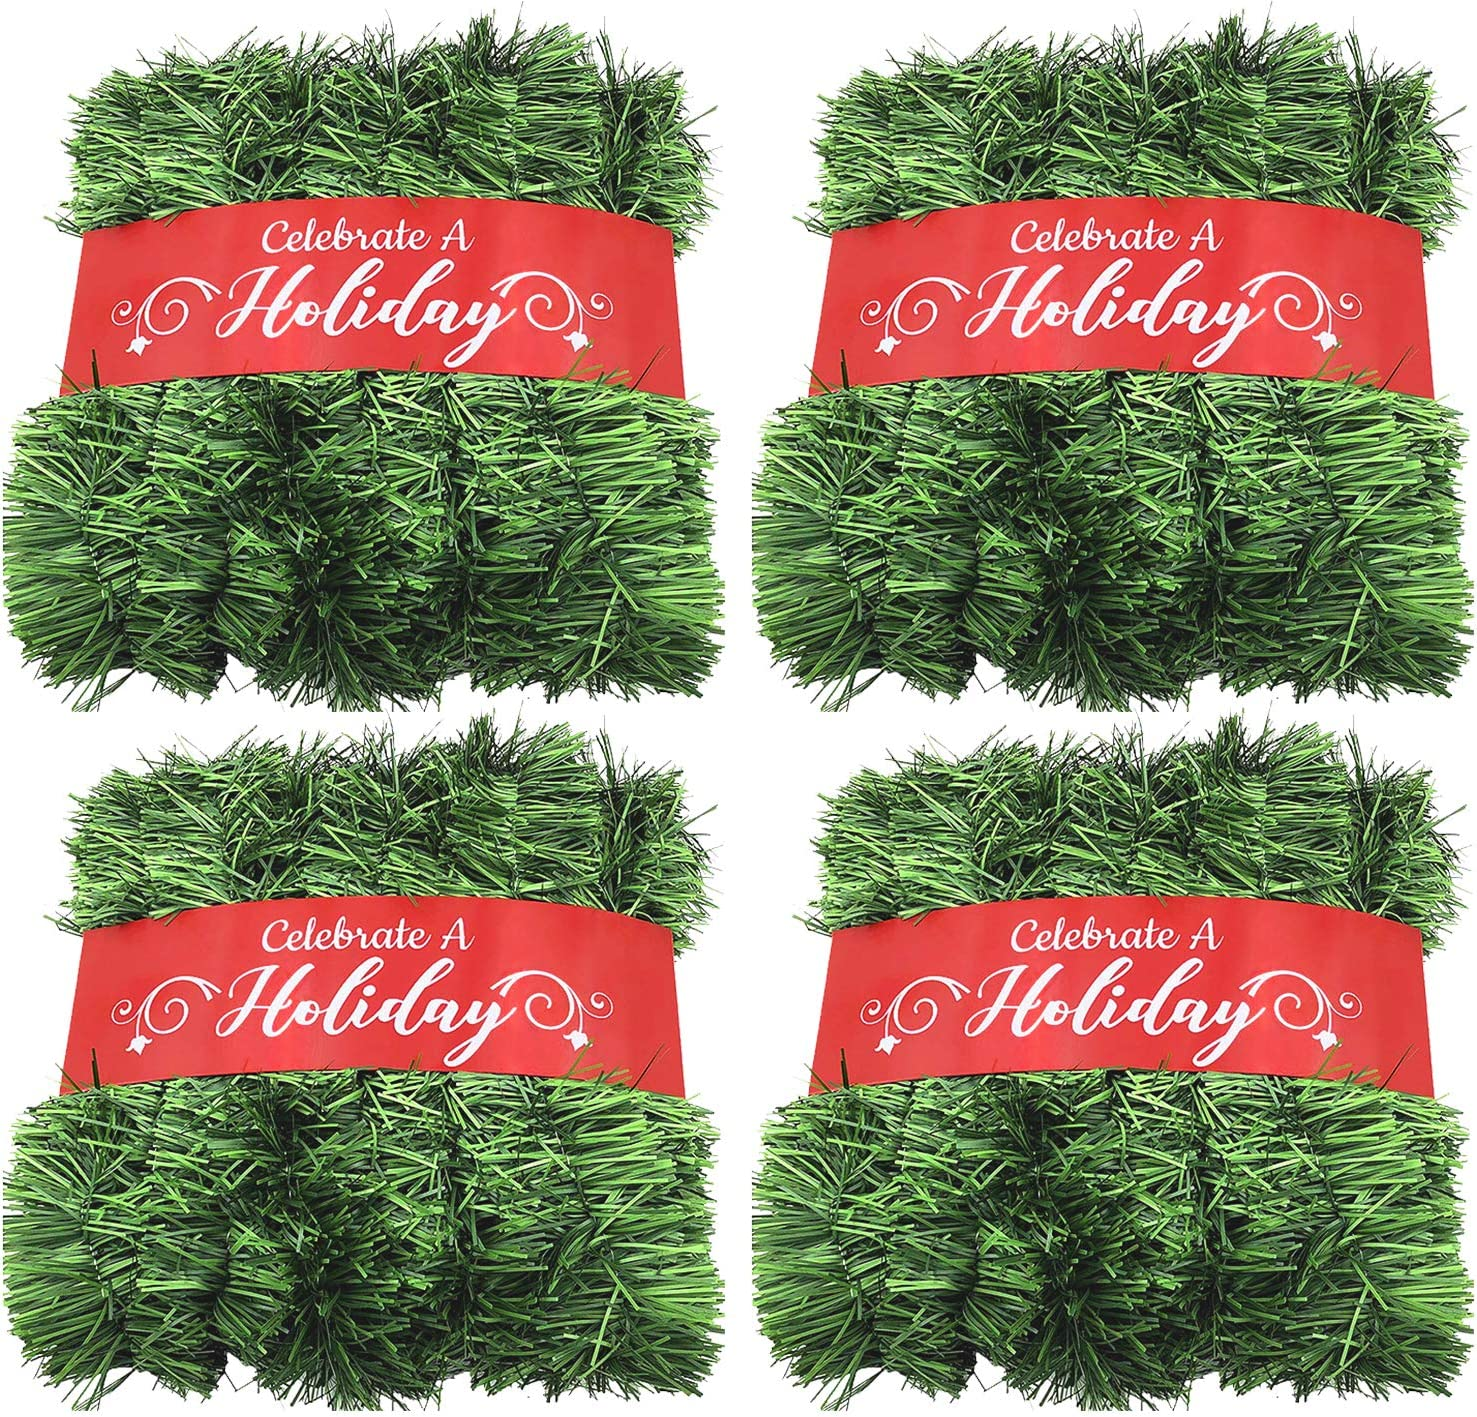 50 Foot Garland for Christmas Decorations - Non-Lit Soft Green Holiday Decor for Outdoor or Indoor Use - Premium Quality Home Garden Artificial Greenery, or Wedding Party Decorations (Pack of 4)